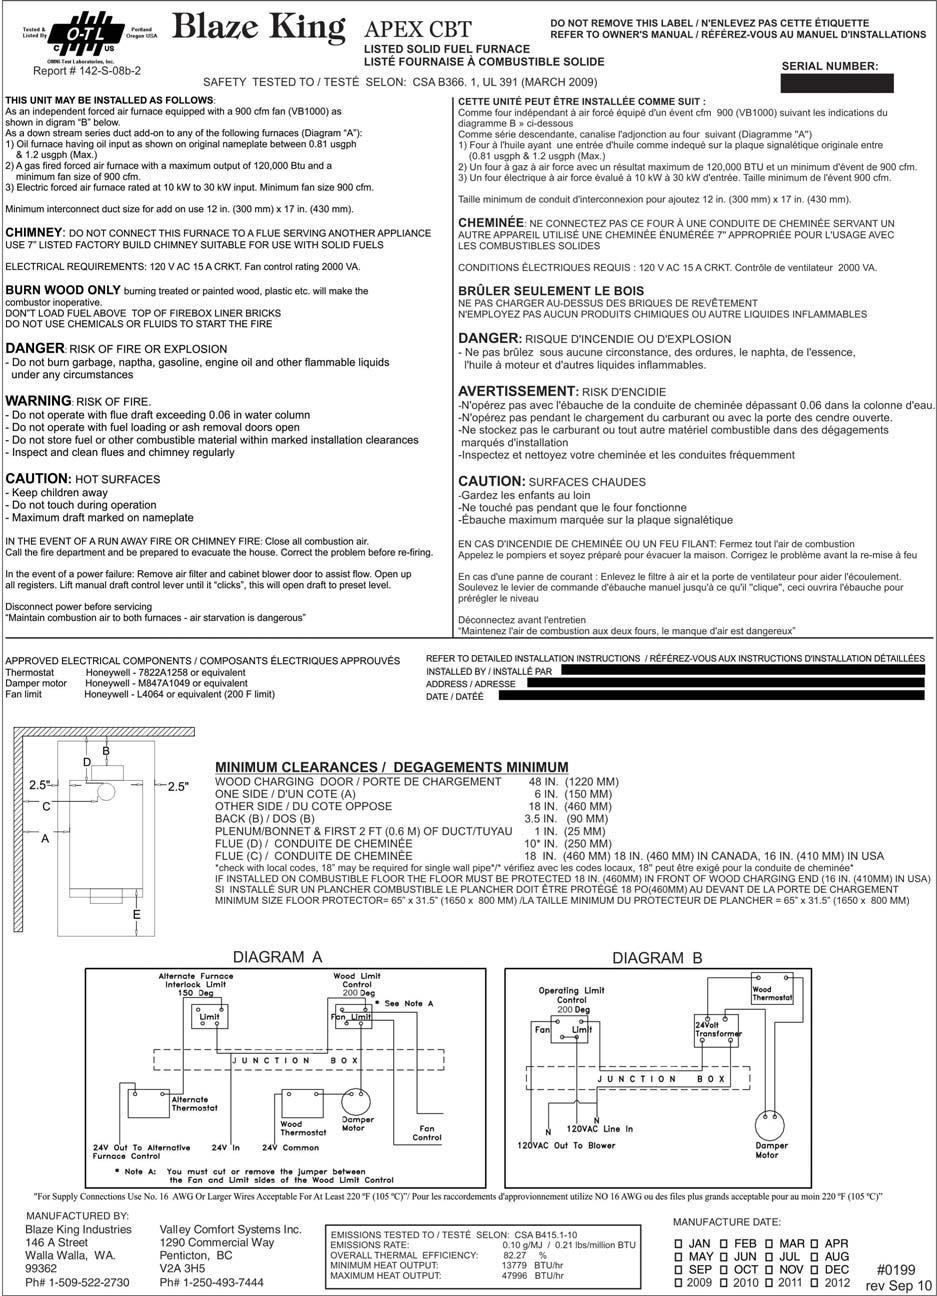 Operation Installation Manual Manufactured By Pdf King Electric Furnace Wiring Diagram Apex Cbt Page 7